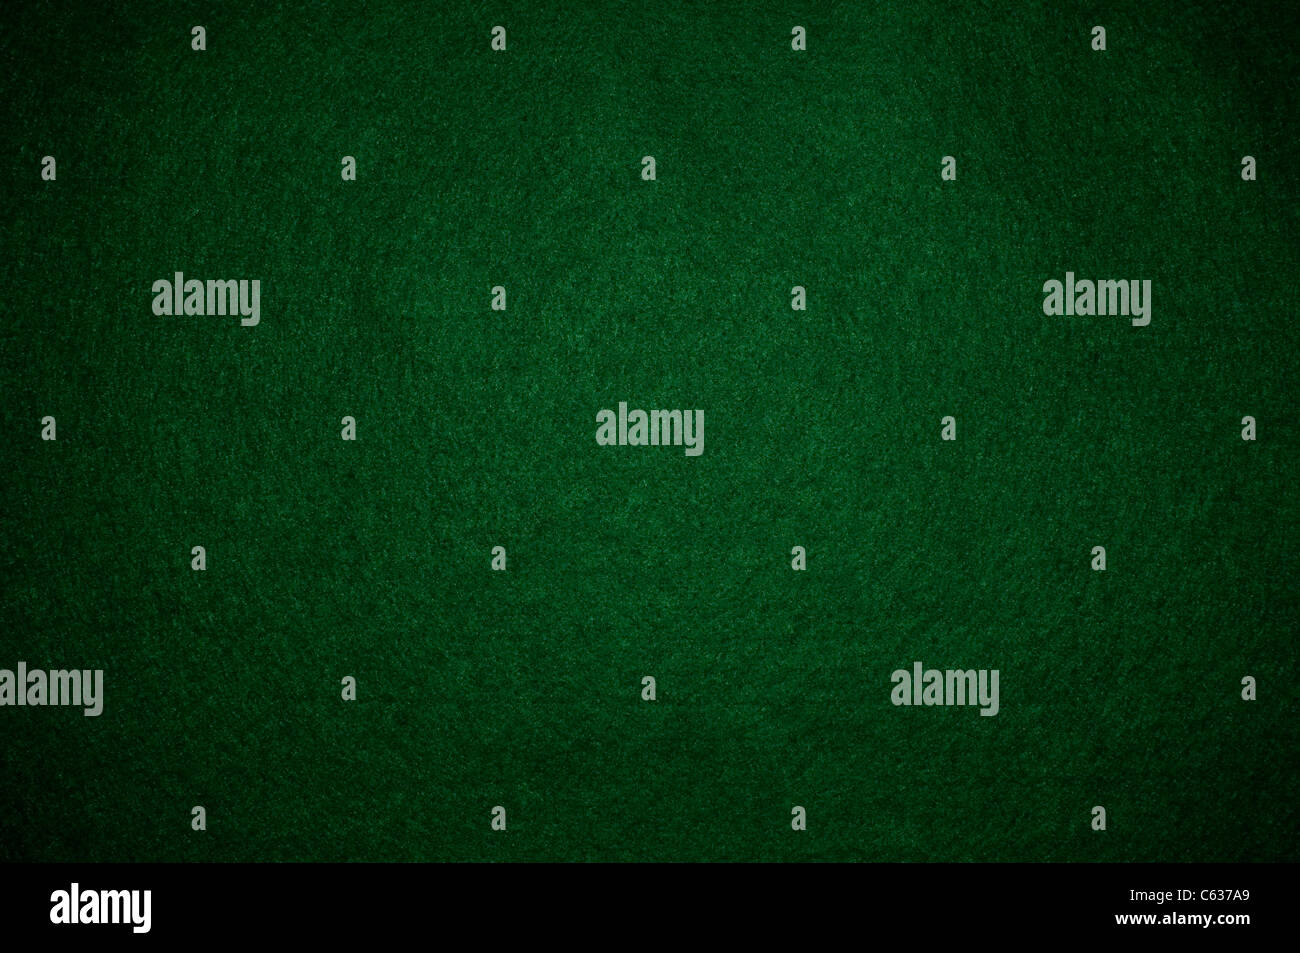 Green poker background - Stock Image